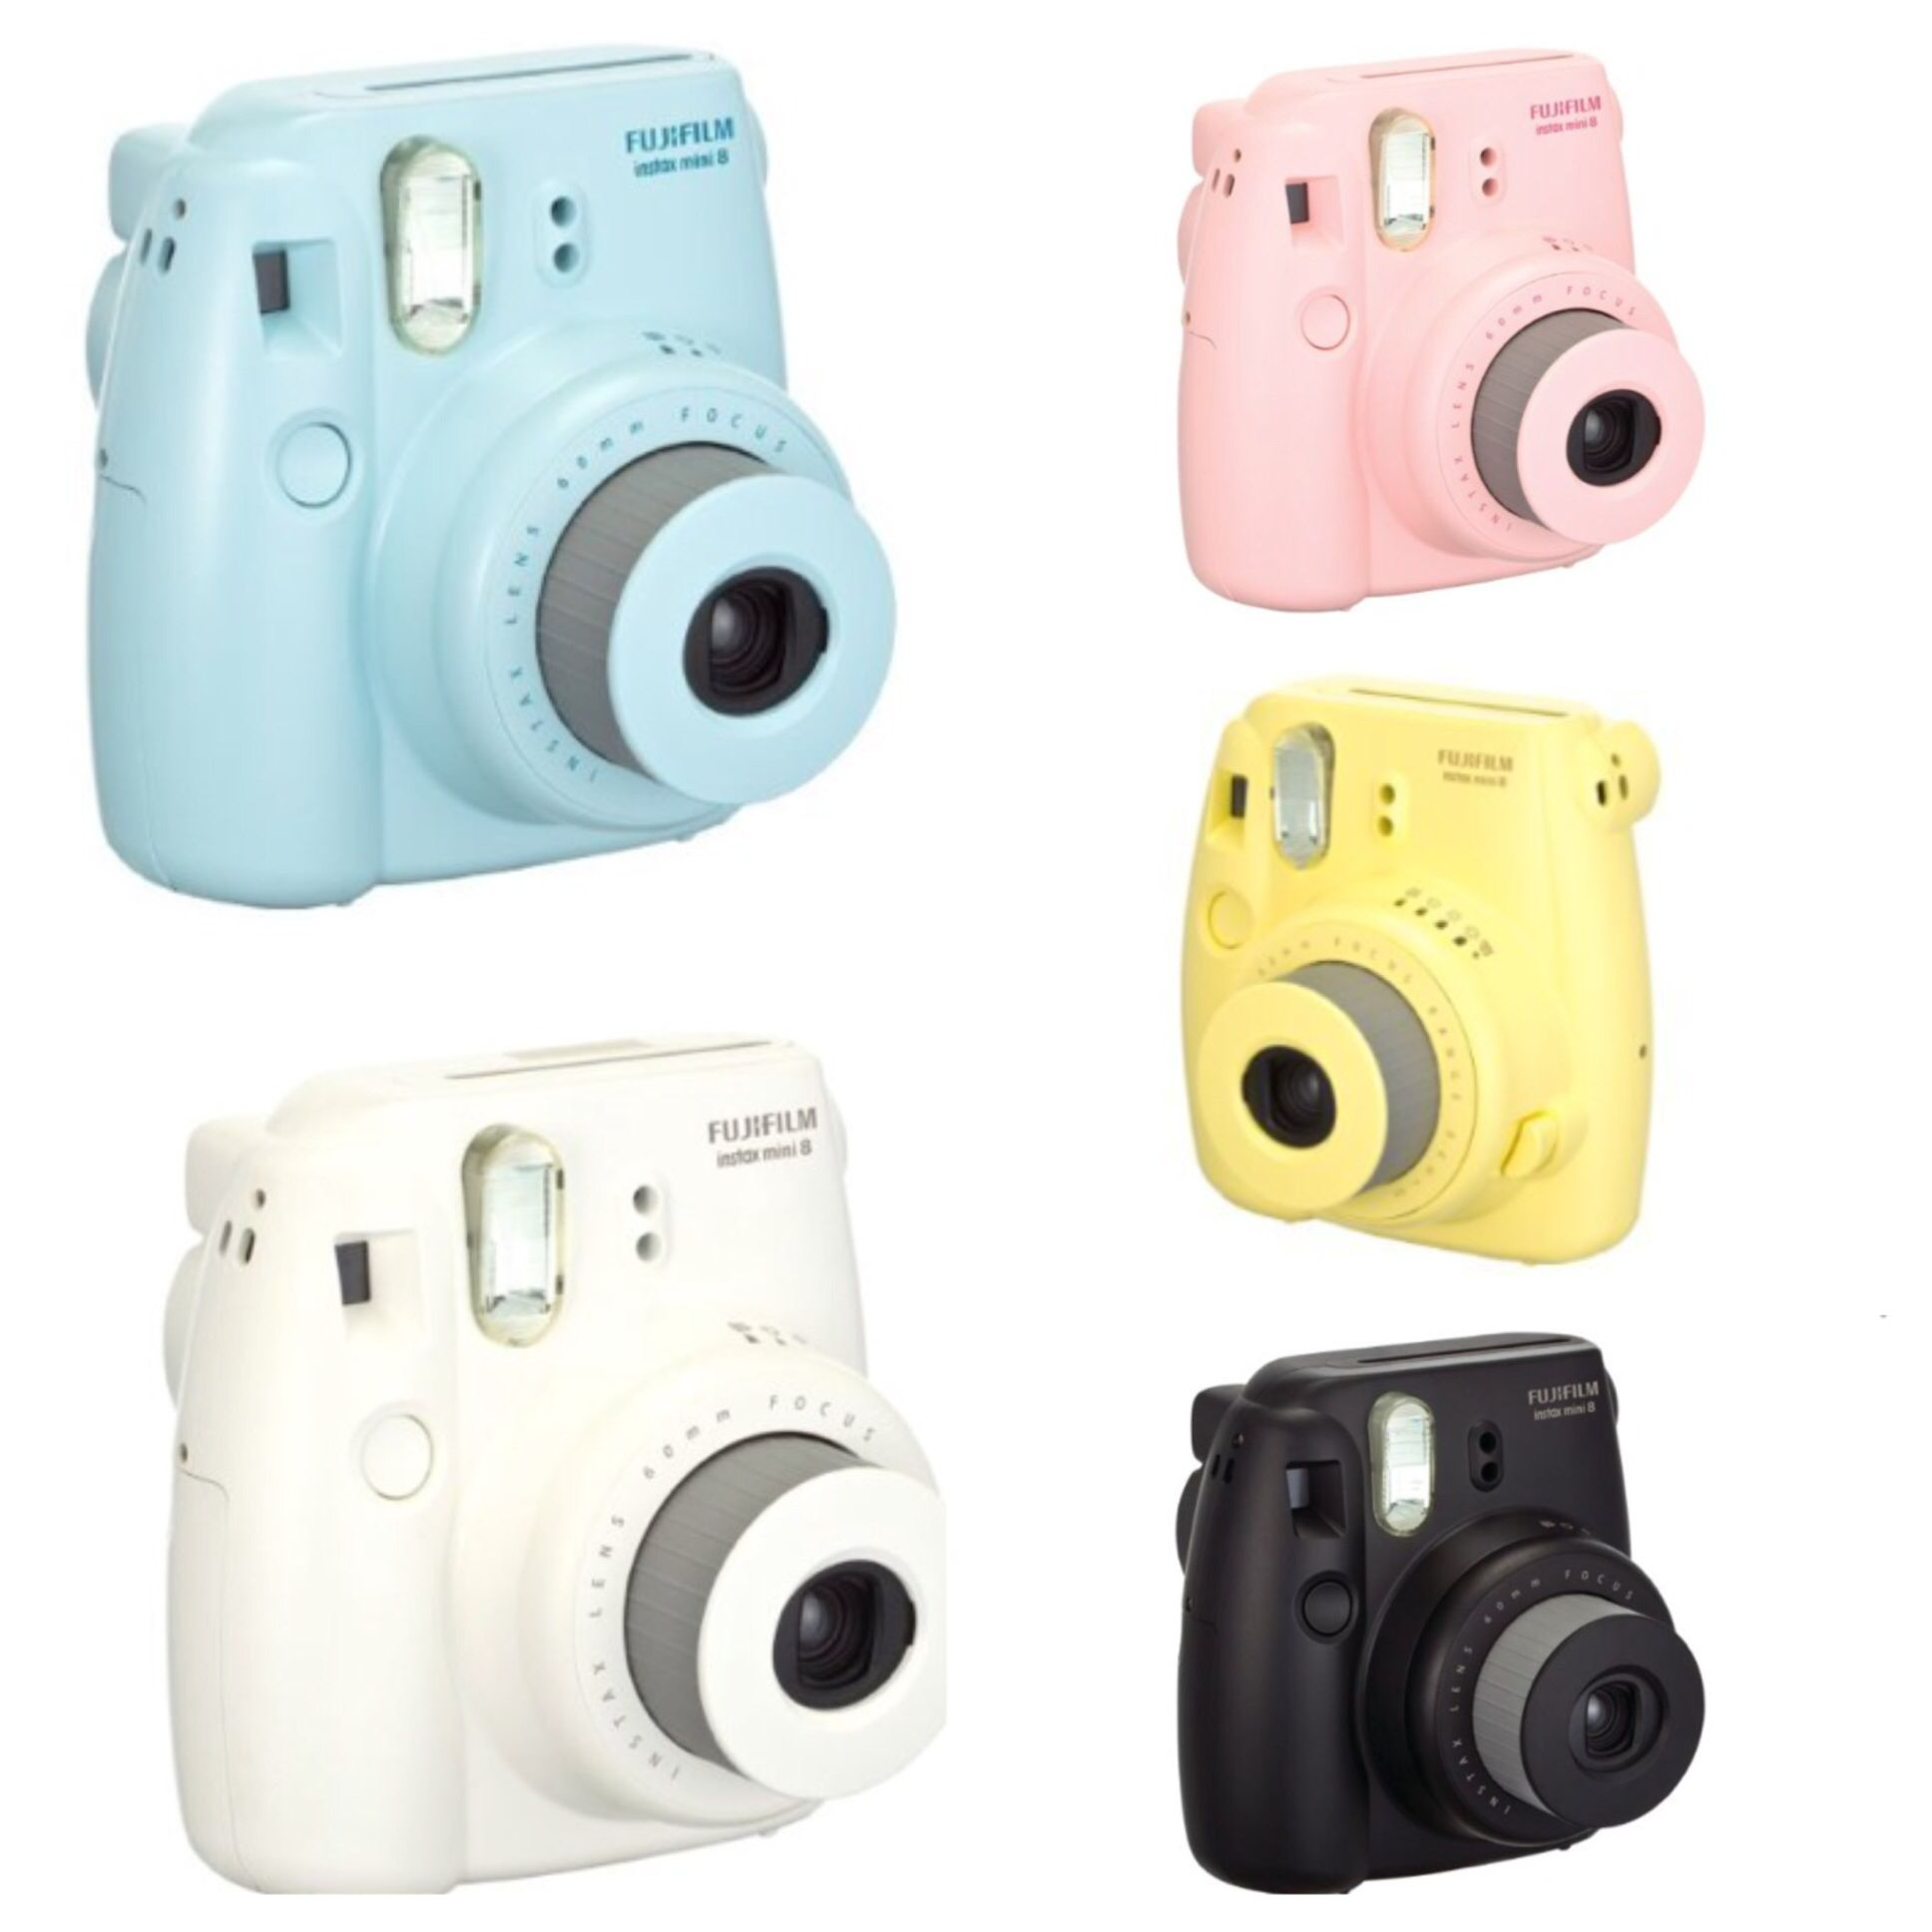 Different Colors For The Fujifilm Polaroid Camera